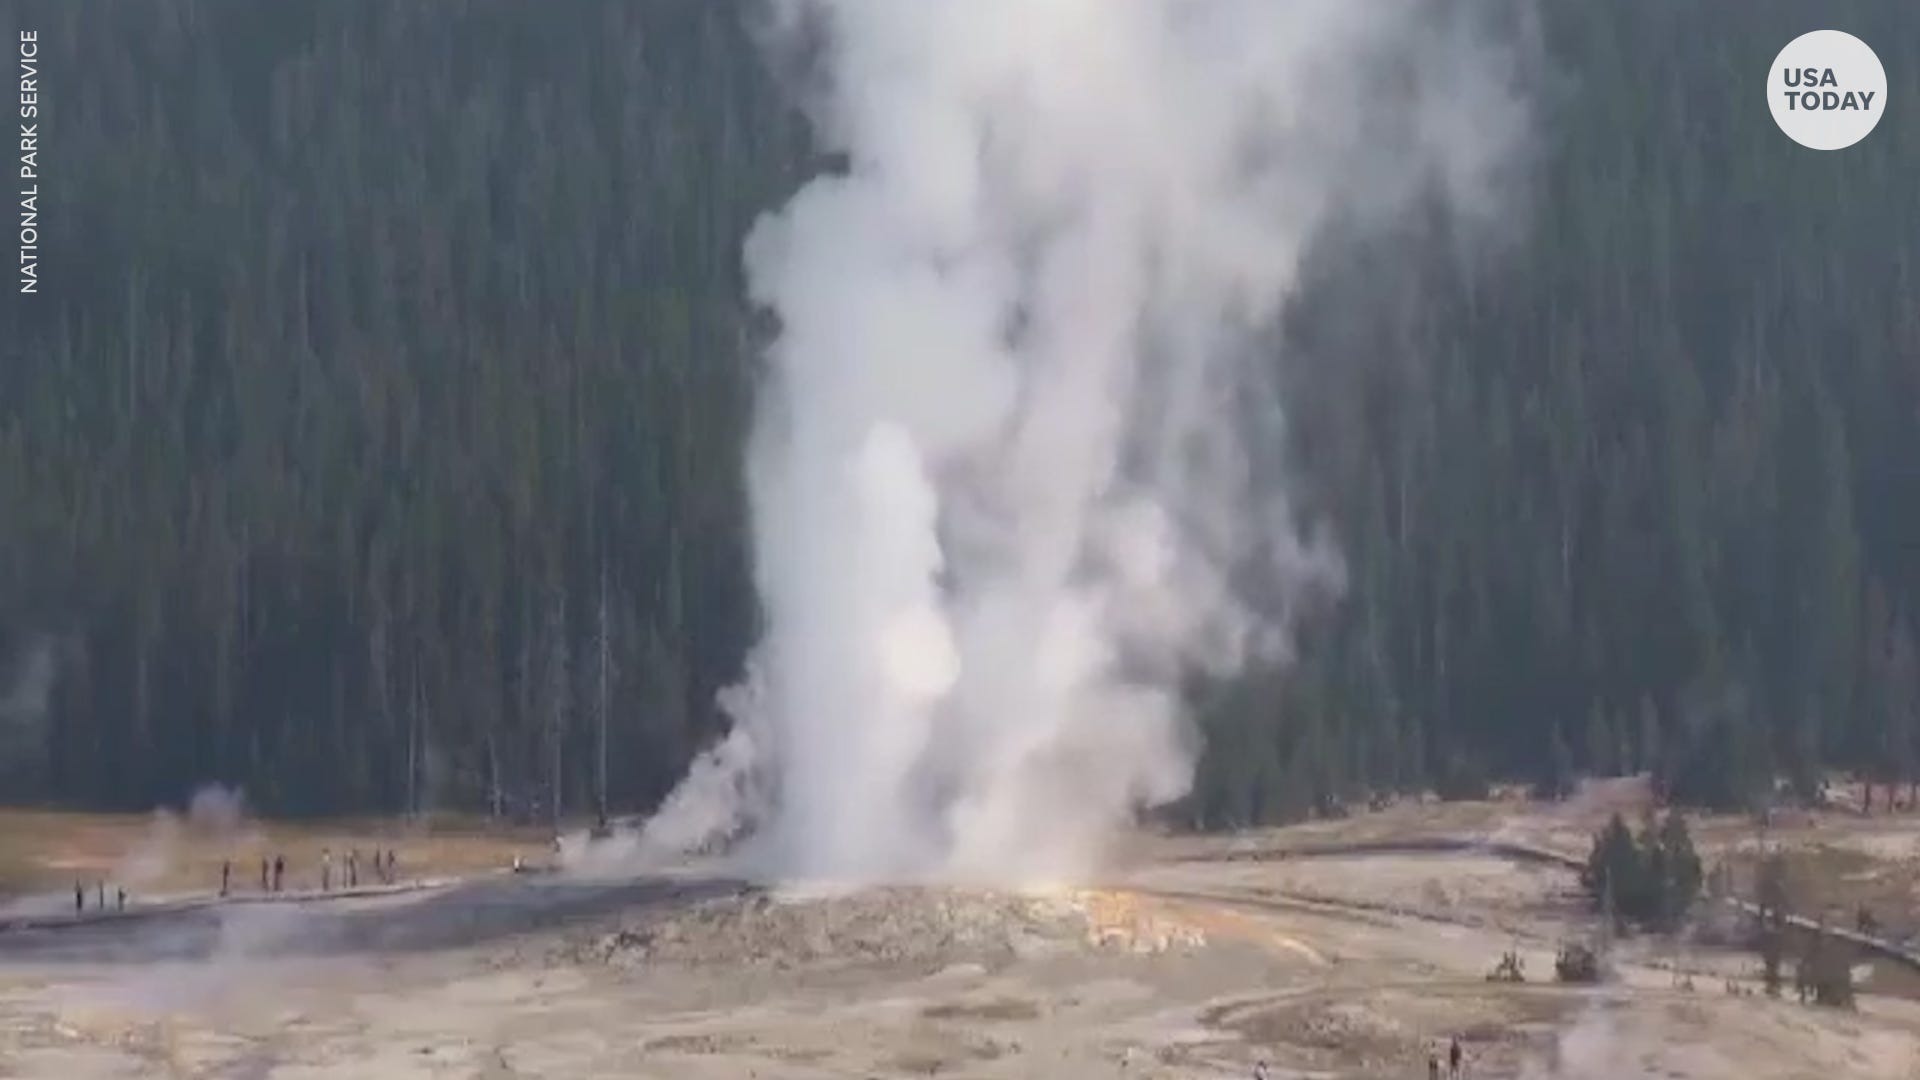 Yellowstone National Park geyser erupts for the first time after 6 years of dormancy